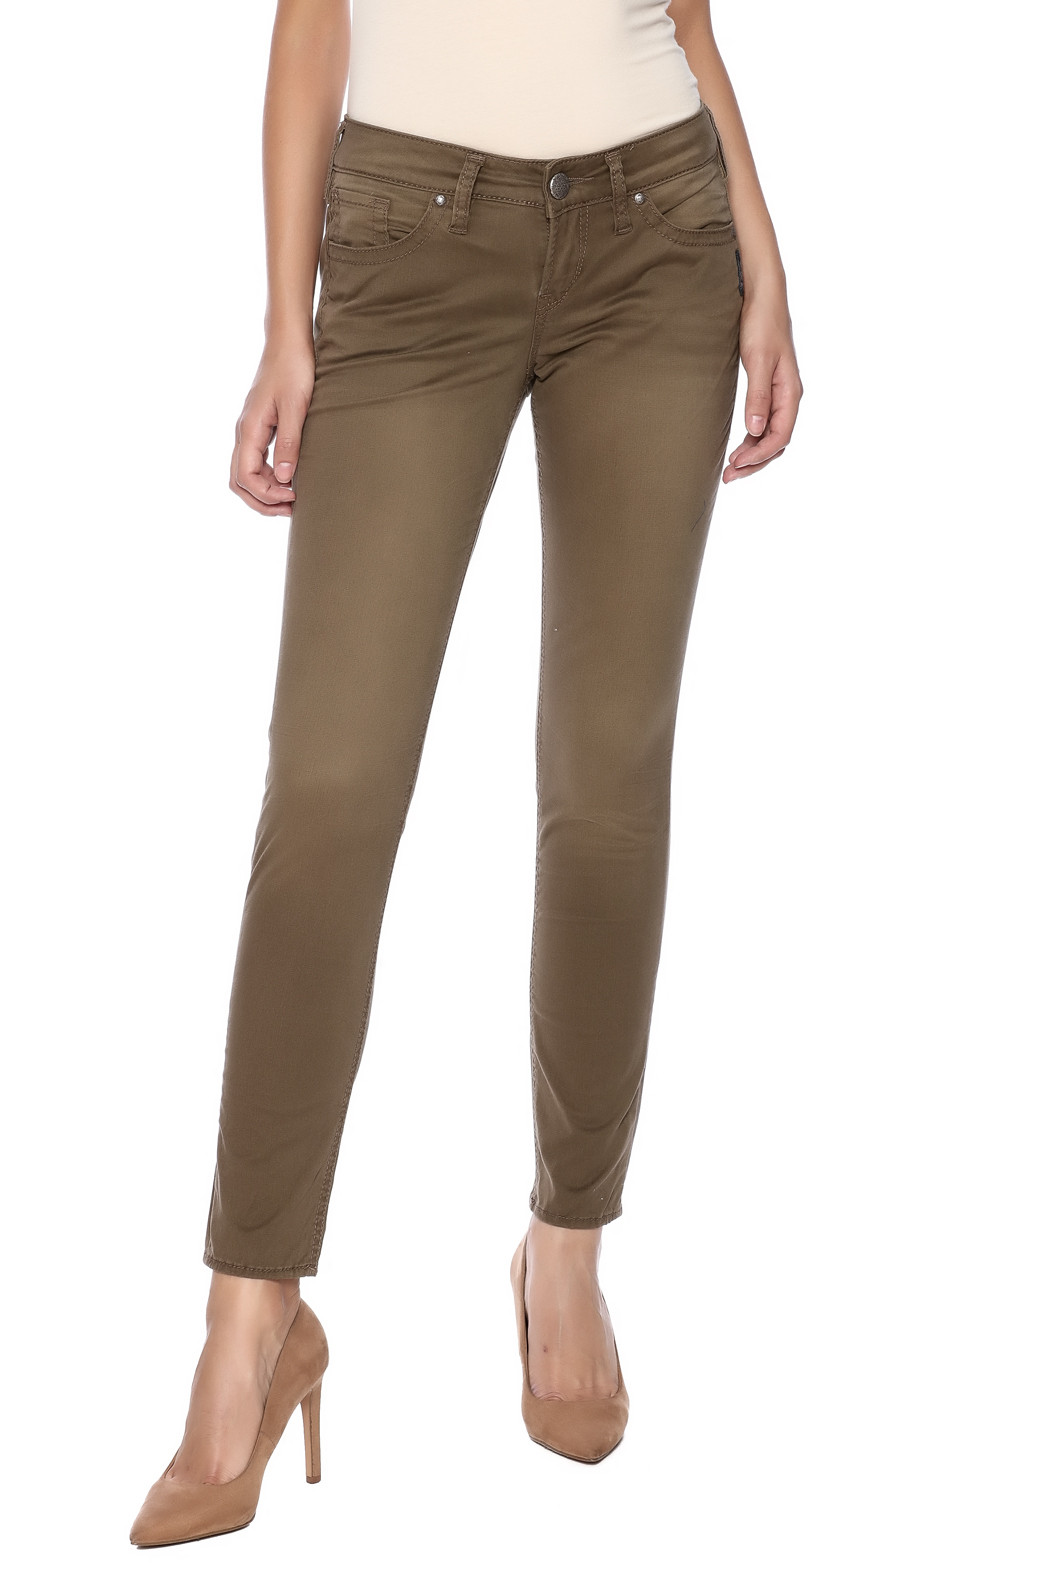 Silver Jeans Co. Aiko Skinny Jeans from Florida by Elise — Shoptiques